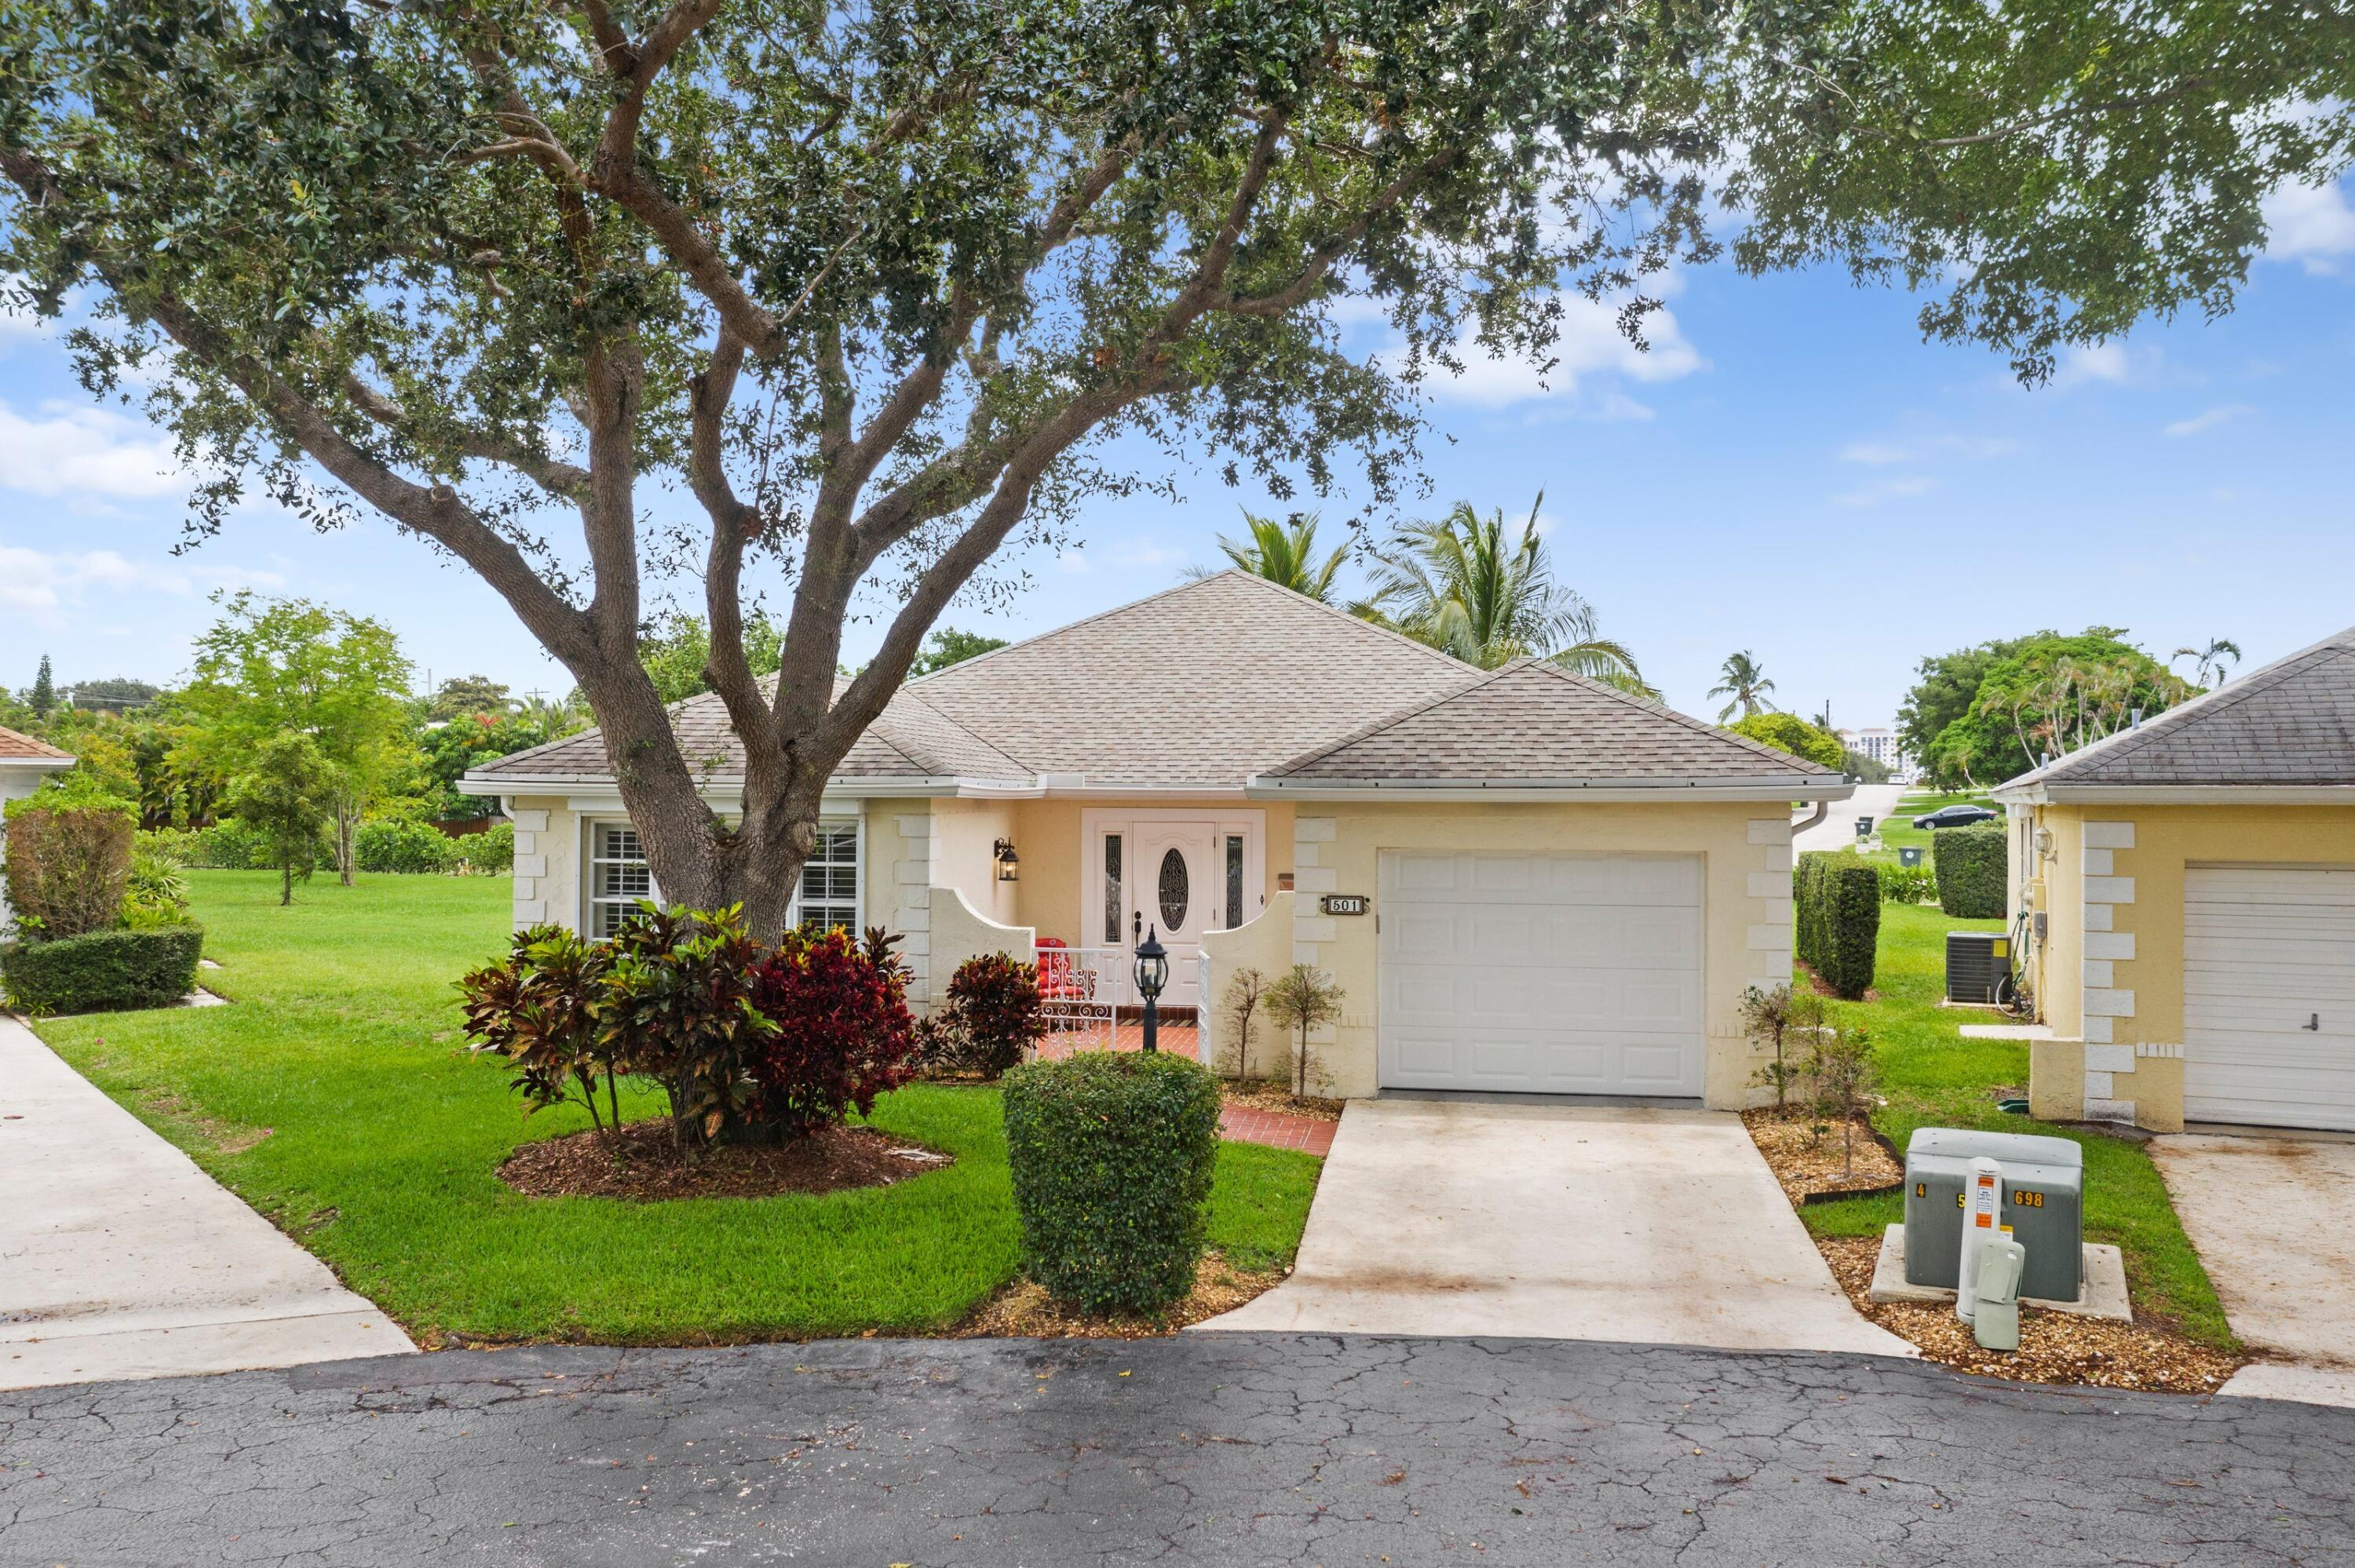 Home for sale in Lincolnwood Boca Raton Florida